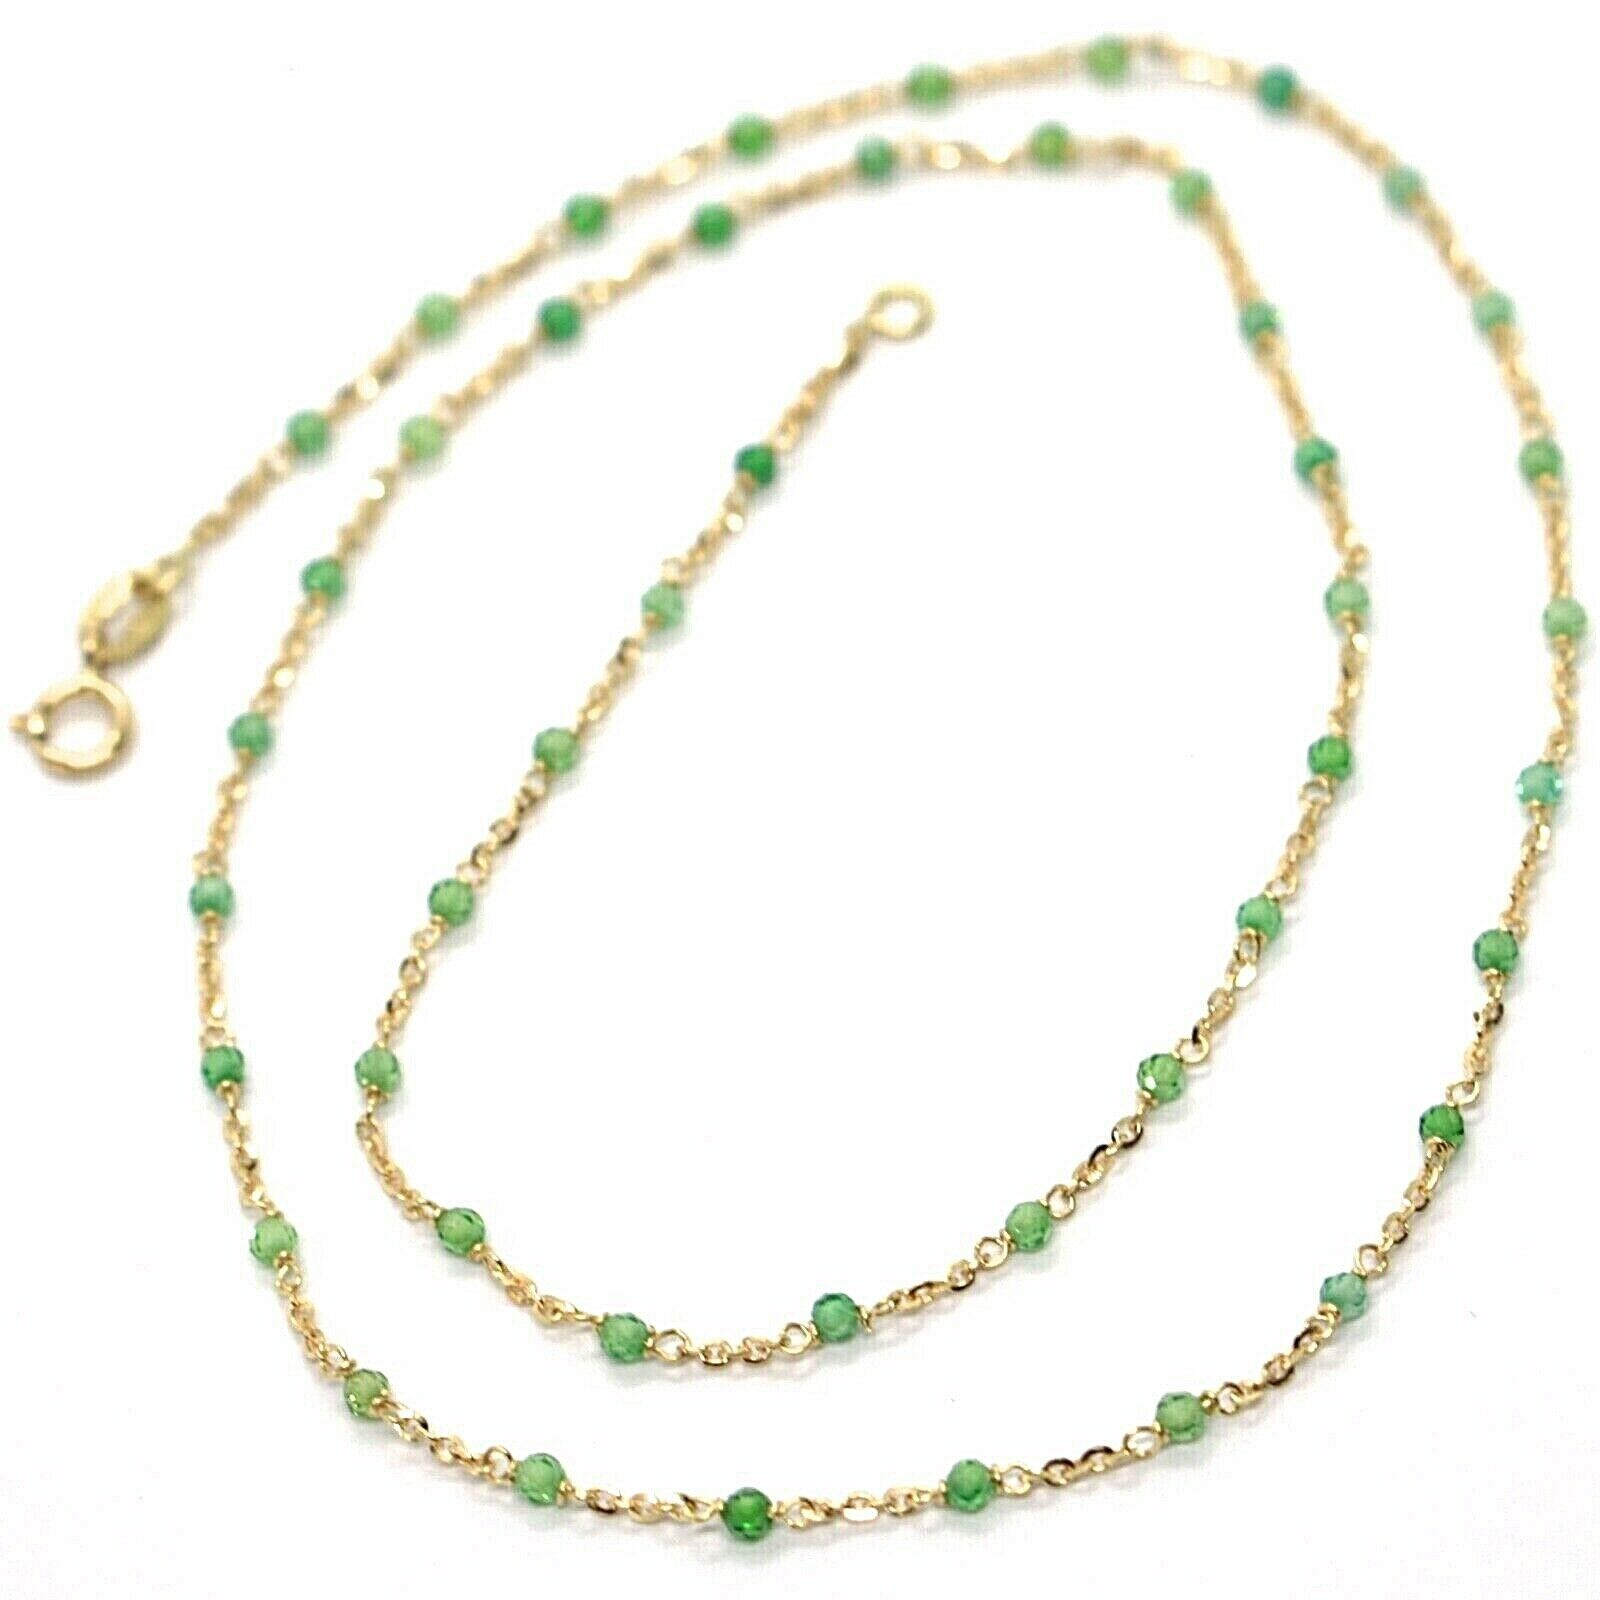 18K YELLOW GOLD NECKLACE, GREEN FACETED CUBIC ZIRCONIA, ROLO CHAIN, 17.7 INCHES